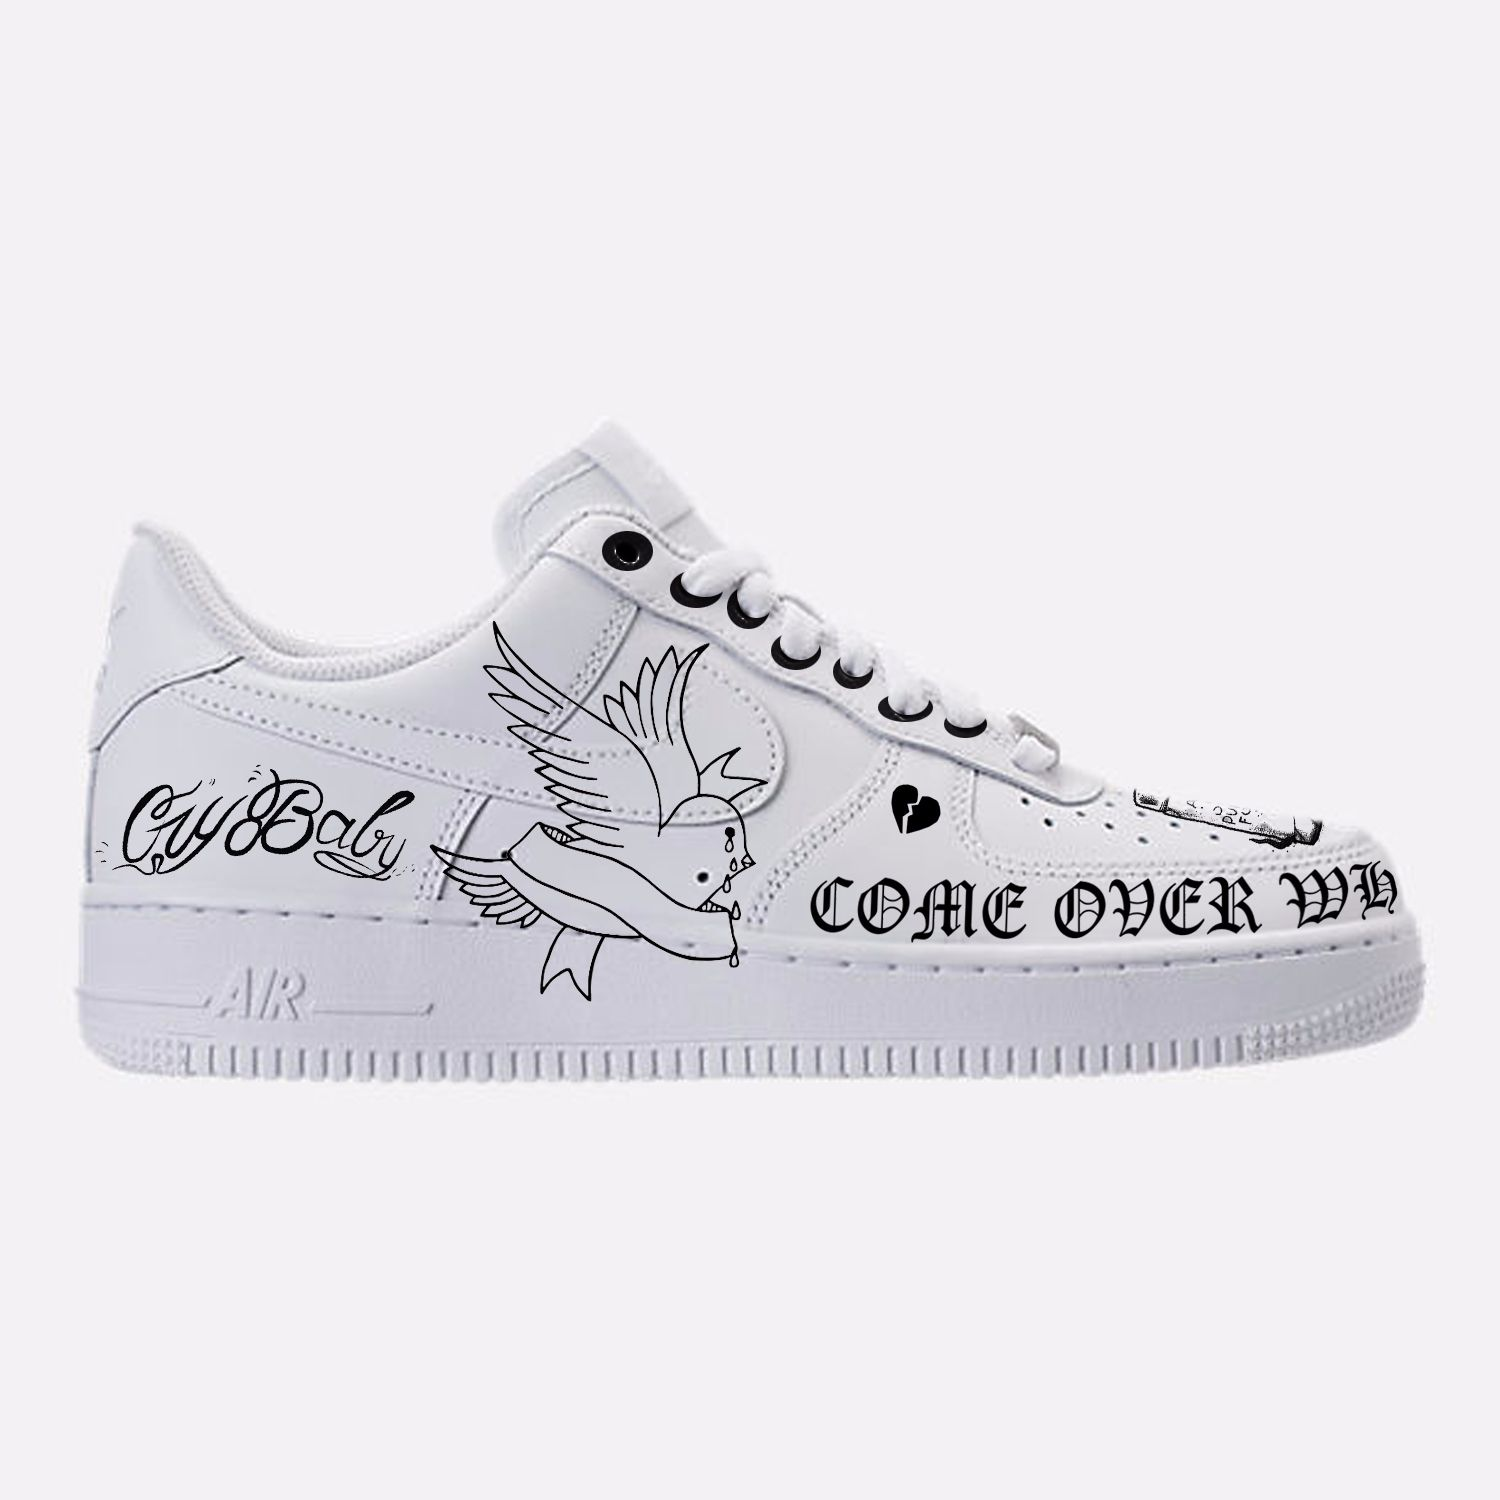 purchase cheap abb36 37a0e Nike Af1 · Sneakers · https   www.instagram.com peter pan cstms  shoes  model name